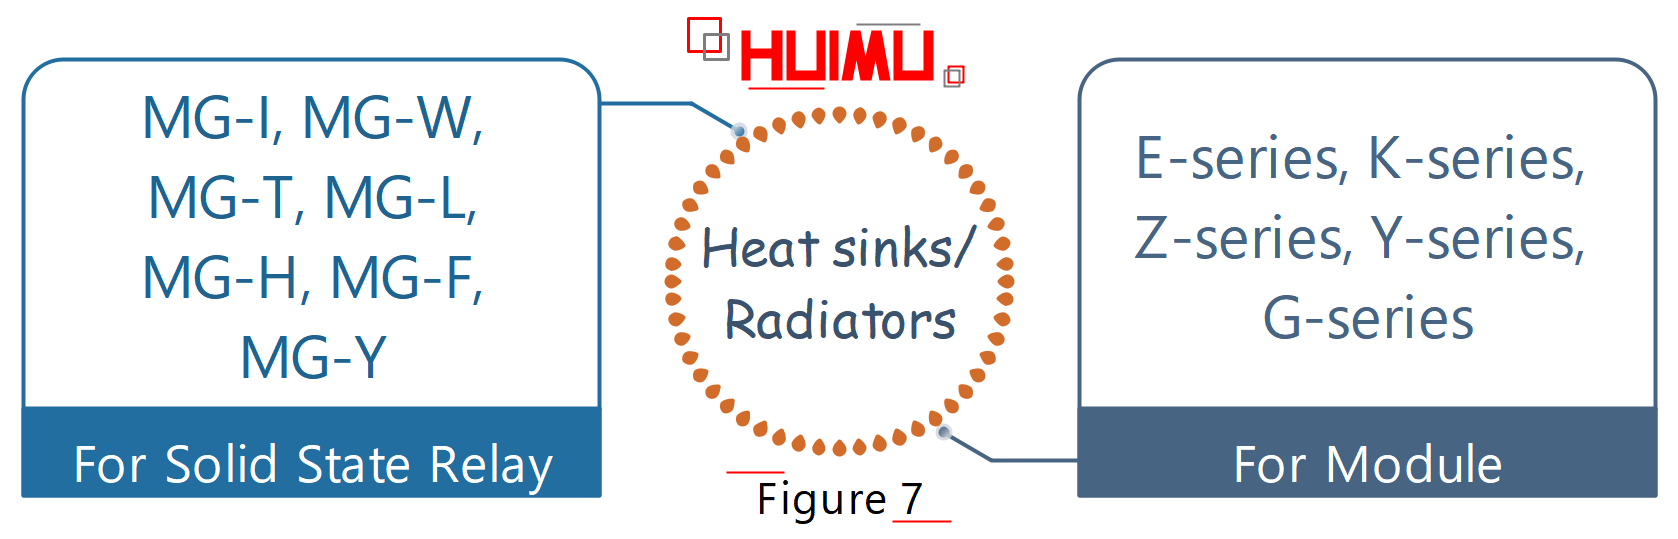 The heat sinks/ radiators produced by our company are divided into two categories, for solid state relay and for module.◆ For Solid State Relay: MG-I, MG-W, MG-T, MG-L, MG-H, MG-F, MG-Y. These seven series are suitable for a variety of single phase solid state relays, single phase AC voltage regulator modules, R series solid state voltage regulators, industrial solid state relays and various three phase AC solid state relays, etc.◆ For Module: E series, K series, Z series, Y series, G series. These series are usually used with an air-cooled fan, suitable for DC commutator modules, voltage regulator modules, rectifier modules, phase-shift trigger modules, thyristor modules, hybrid modules, welding machine modules, etc.